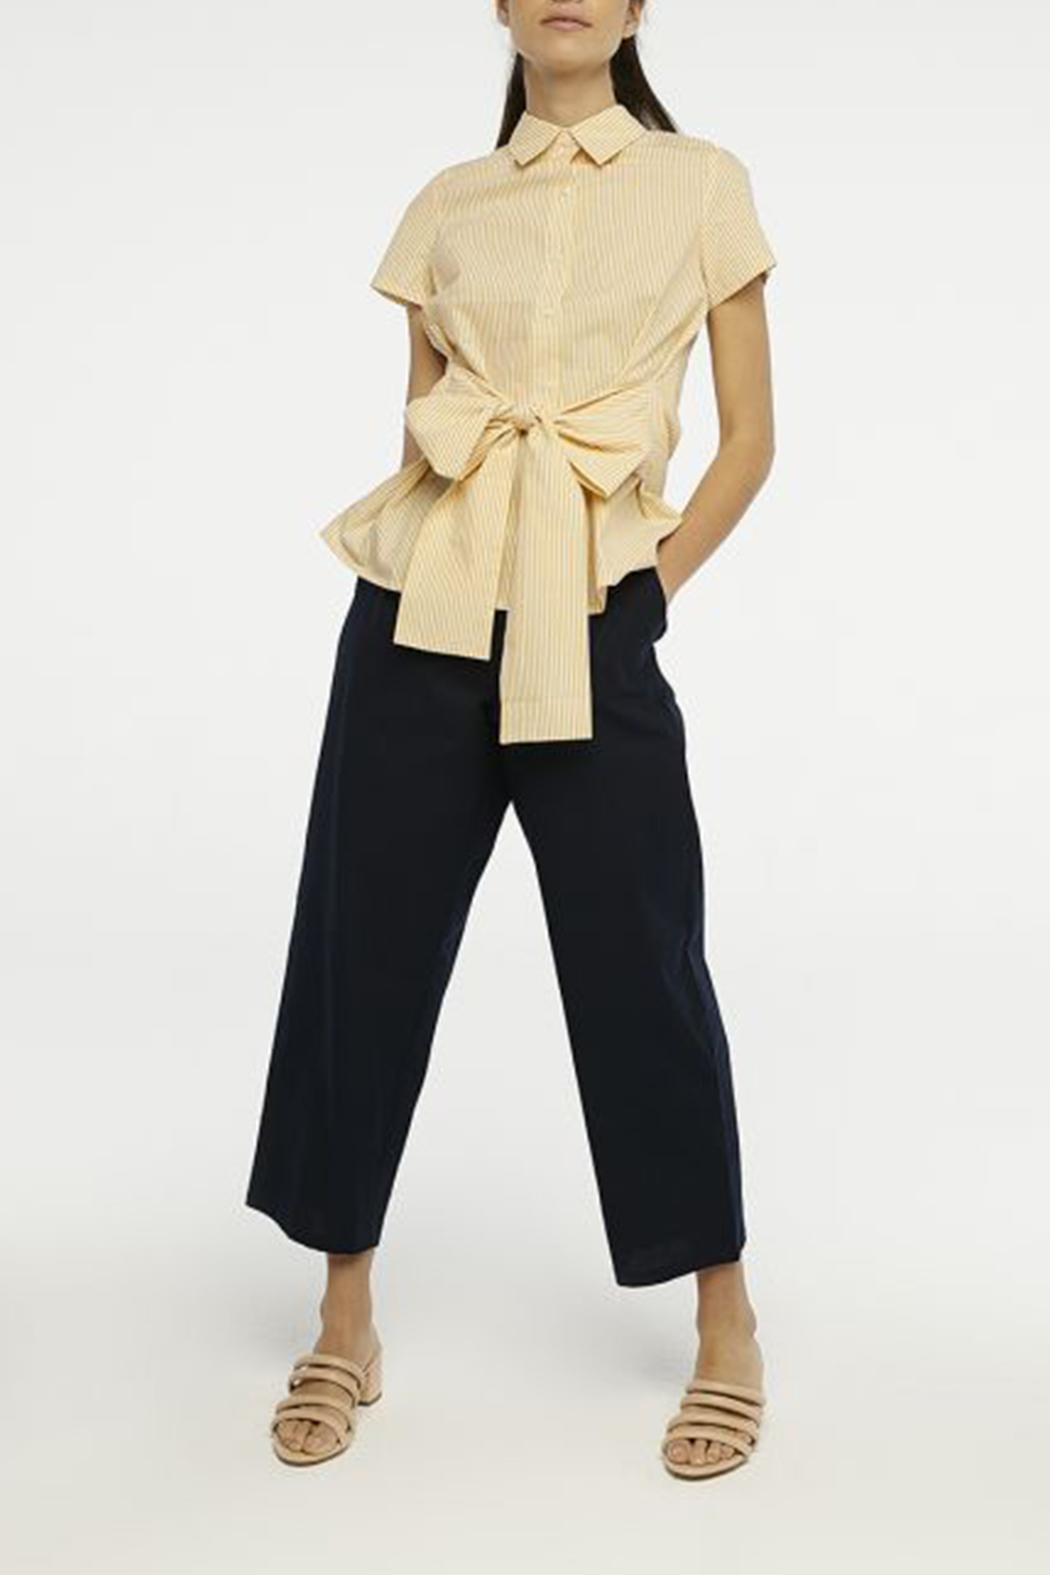 Compania Fantastica Bow Button-Up Shirt - Side Cropped Image